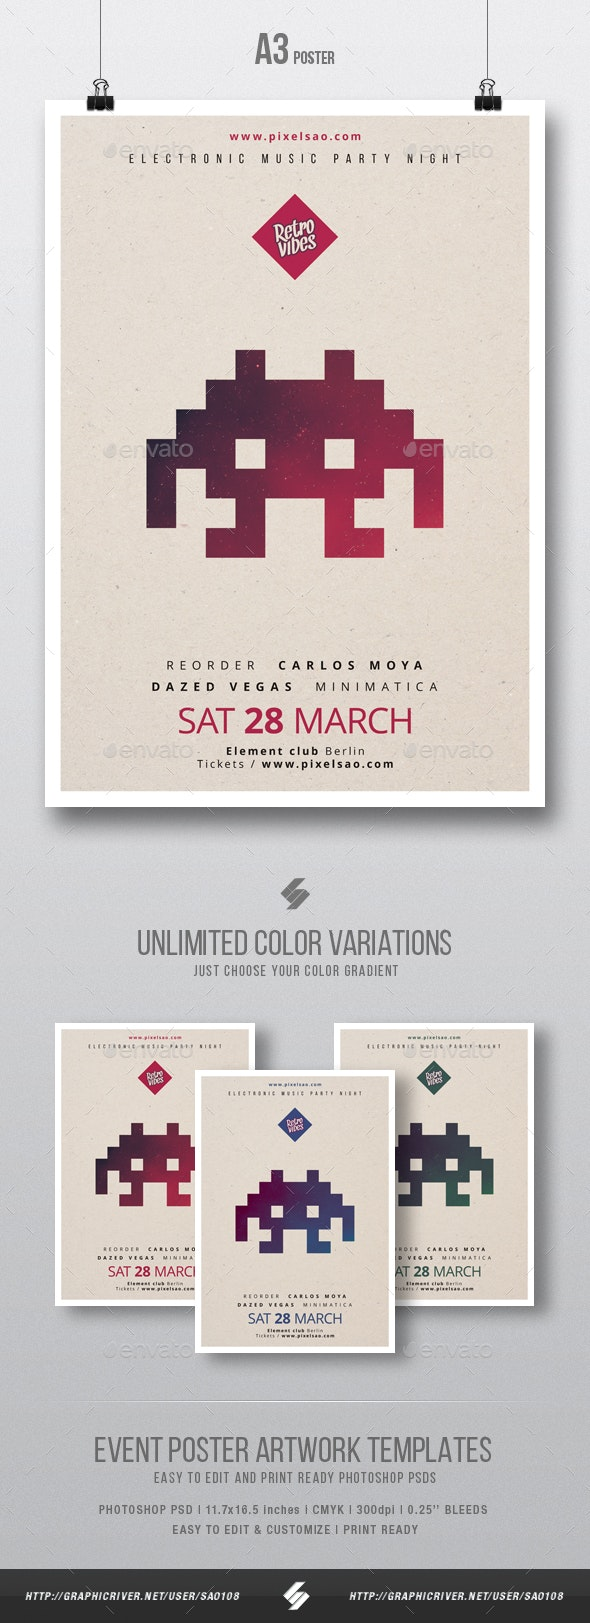 Retro Vibes - Minimal Party Poster / Flyer Template A3